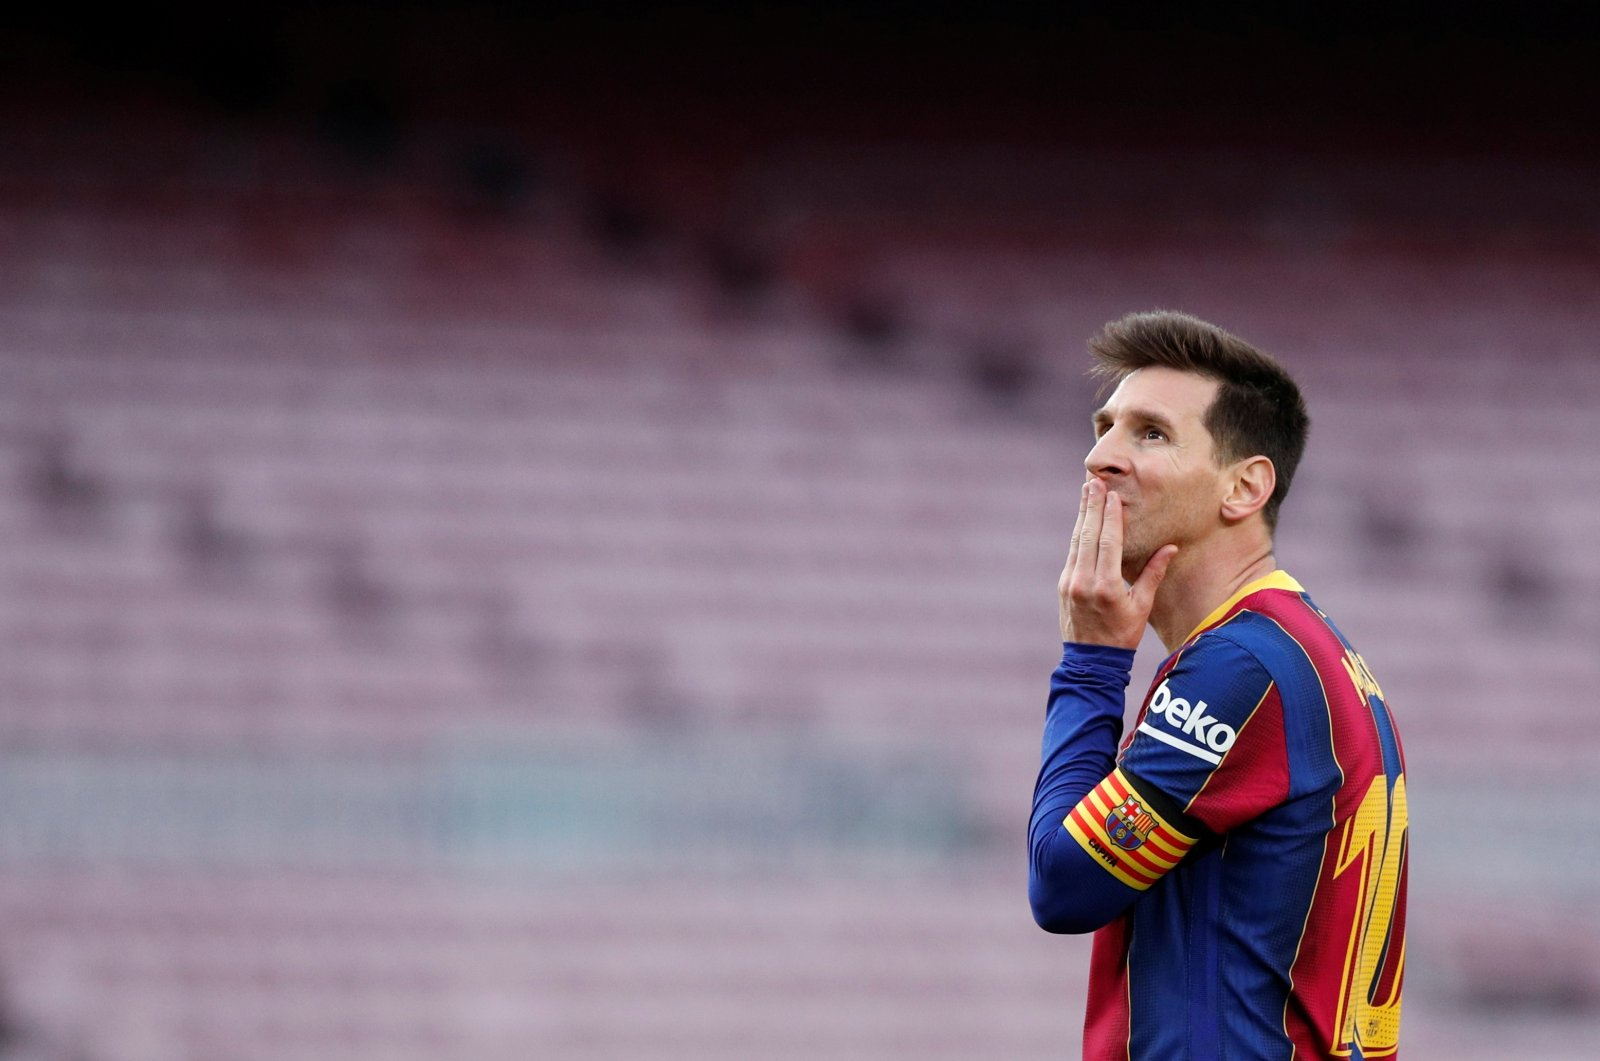 Lionel Messi reacts during a La Liga match between Barcelona and Celta Vigo at Camp Nou stadium, in Barcelona, Spain, May 16, 2021. (Reuters Photo)